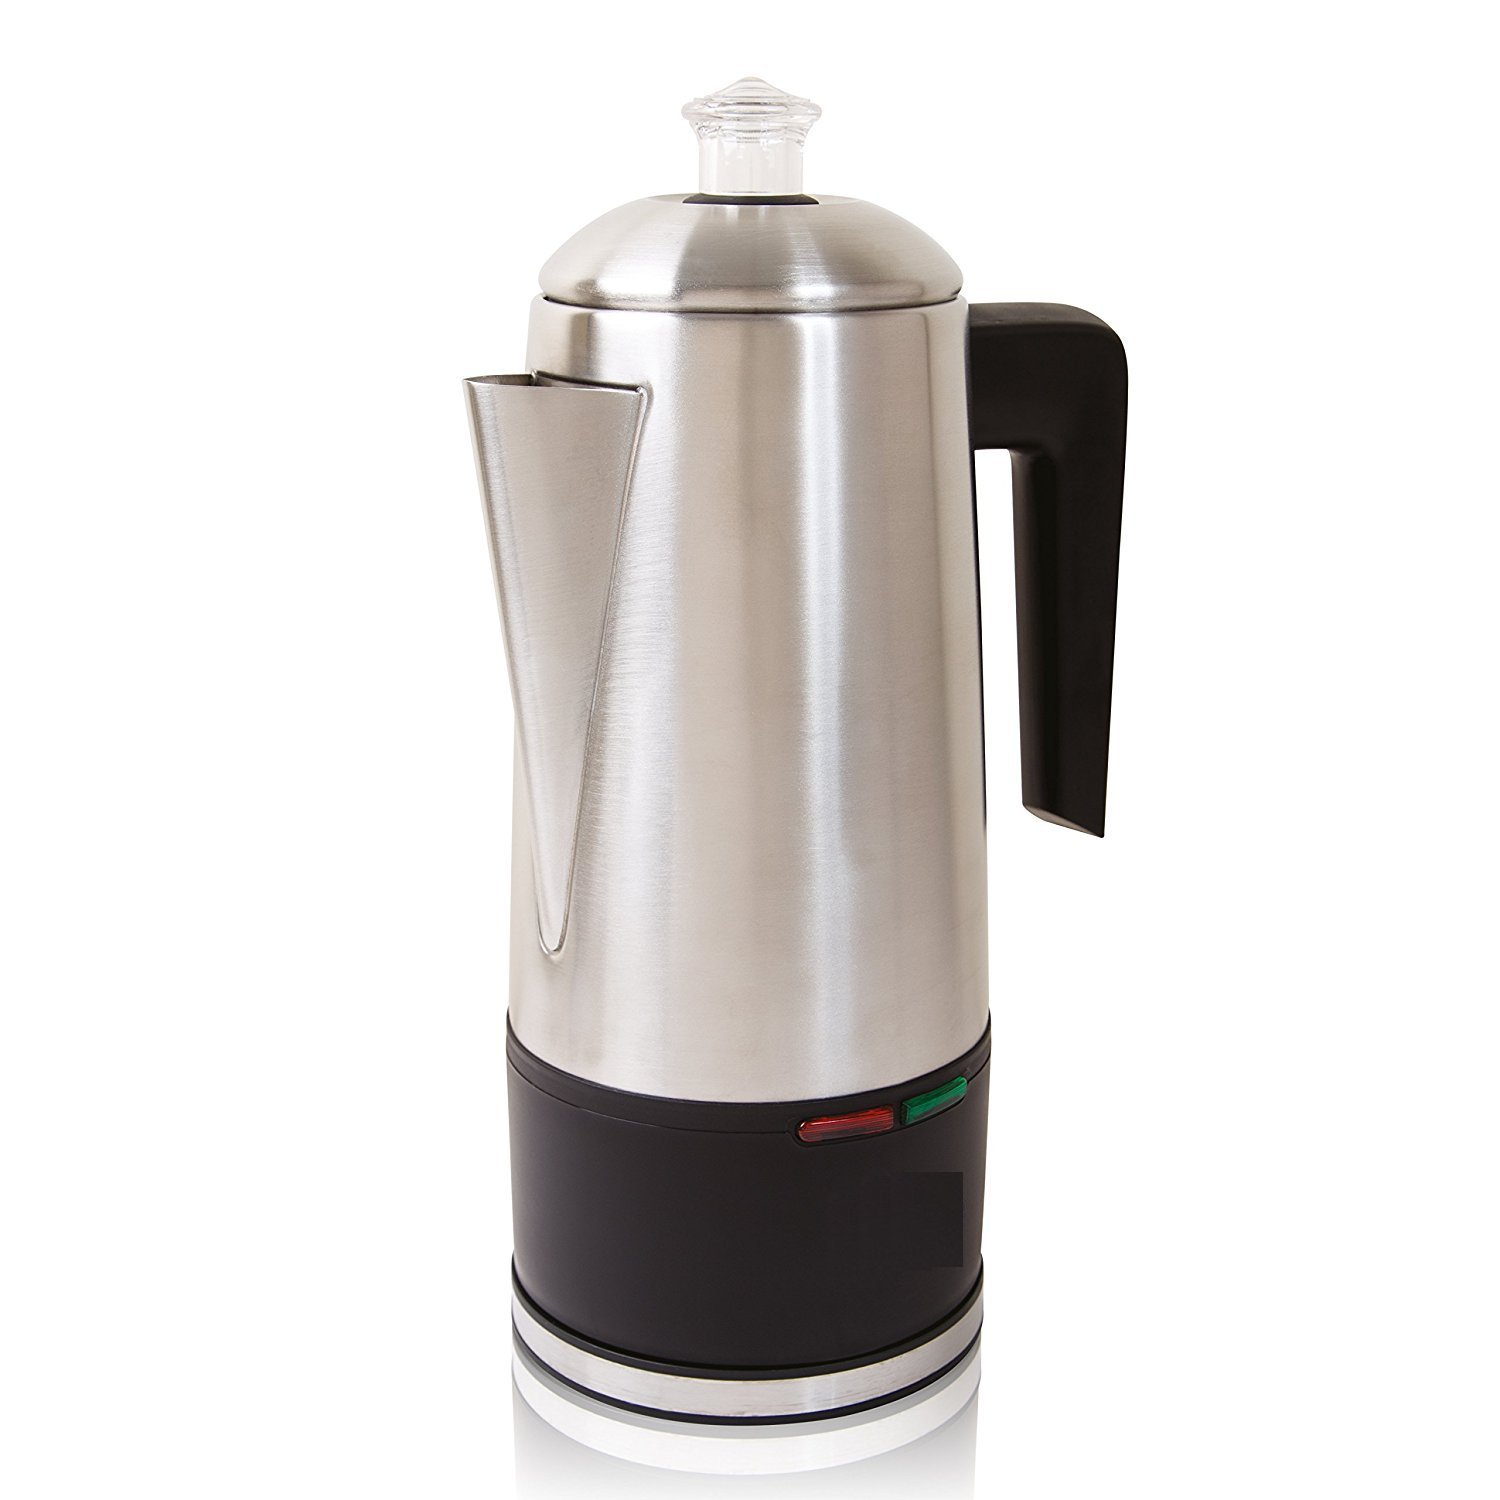 Unibos Best Selling Electric 12 Cup Stainless Steel Coffee Percolator 1.8L Coffeemaker Makes delicious, perfectly brewed coffee anytime.